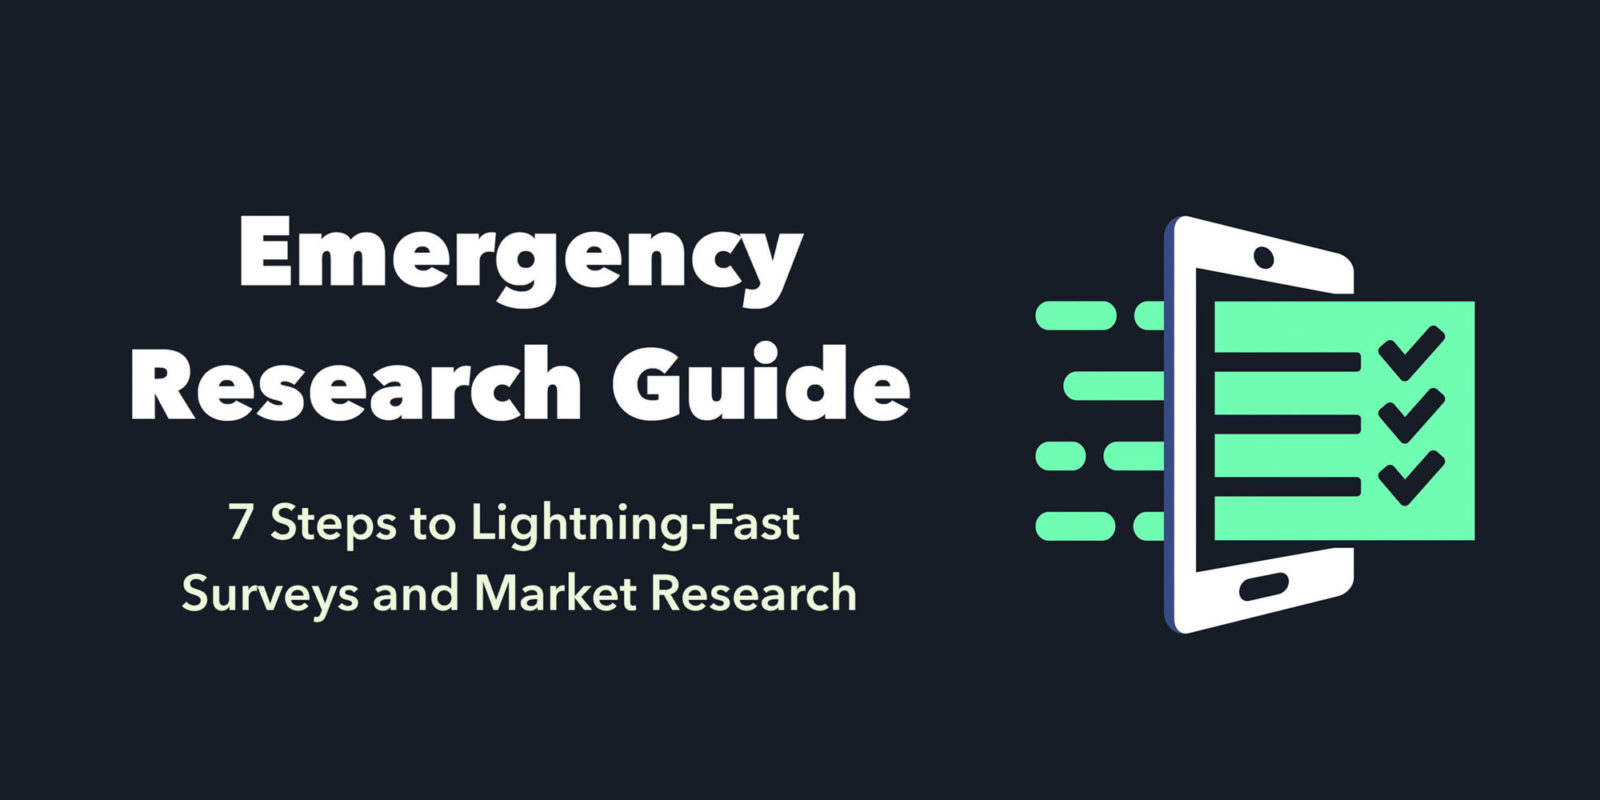 Emergency Research Guide: 7 Steps to Lightning-fast Surveys and Market Research